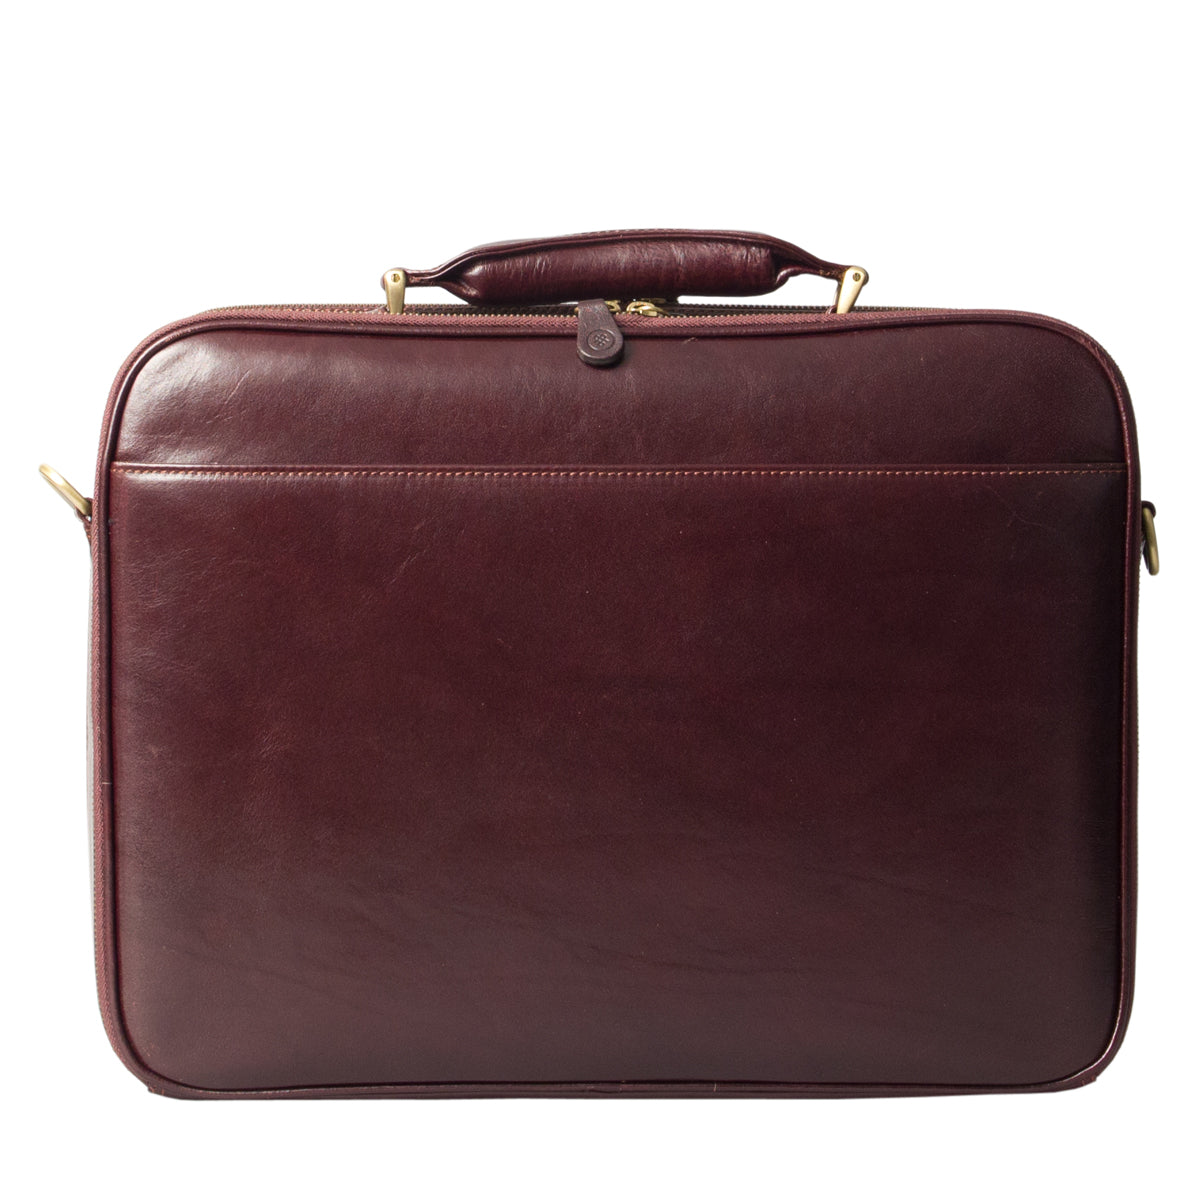 Image 4 of the 'Volterra' Brown Veg Tanned Leather Laptop Case